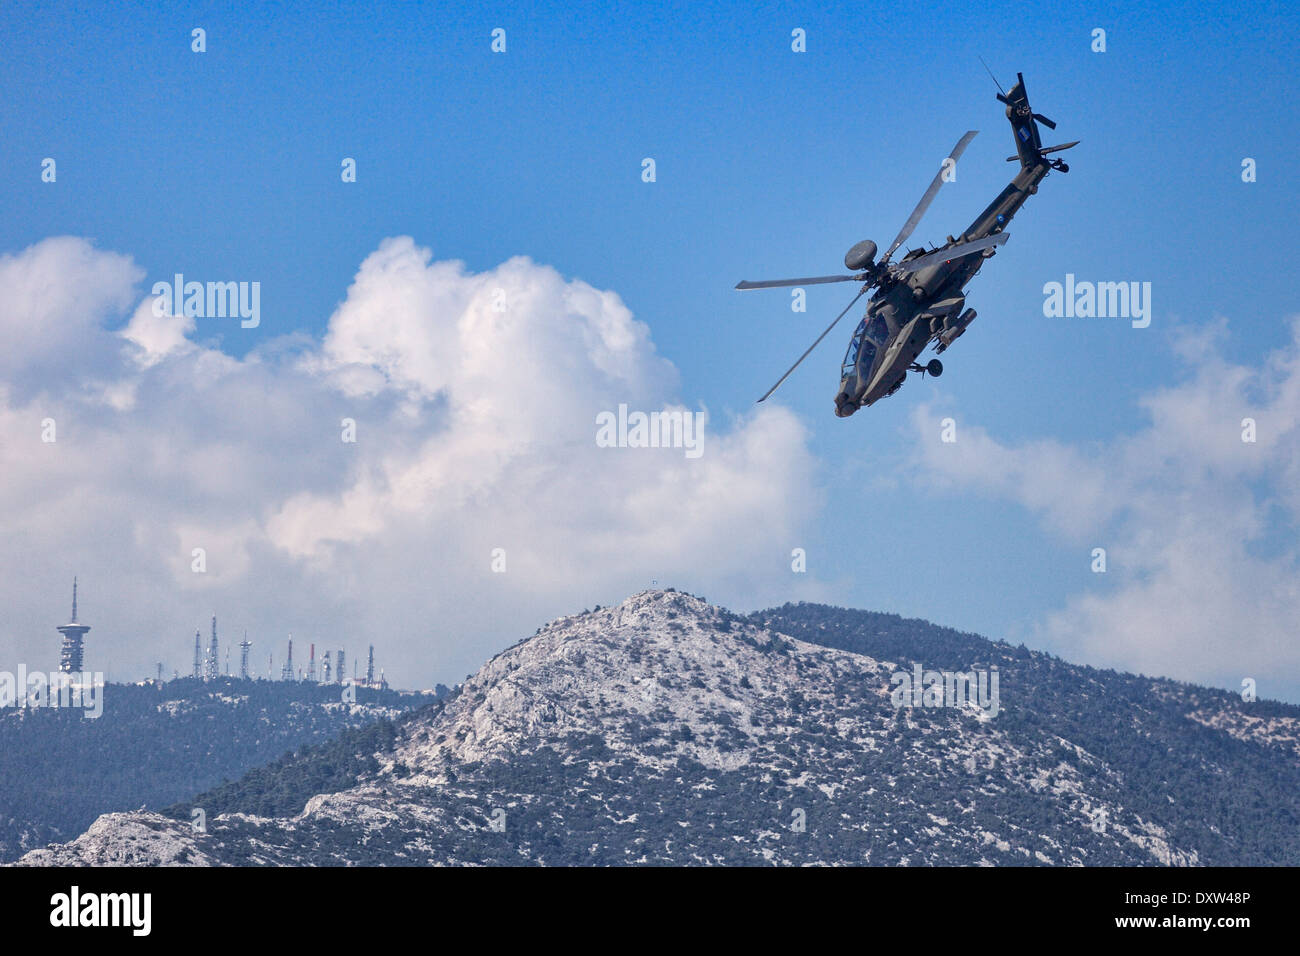 Apache helicopter aerobatic performance during Air Show in Athens, Greece - Stock Image